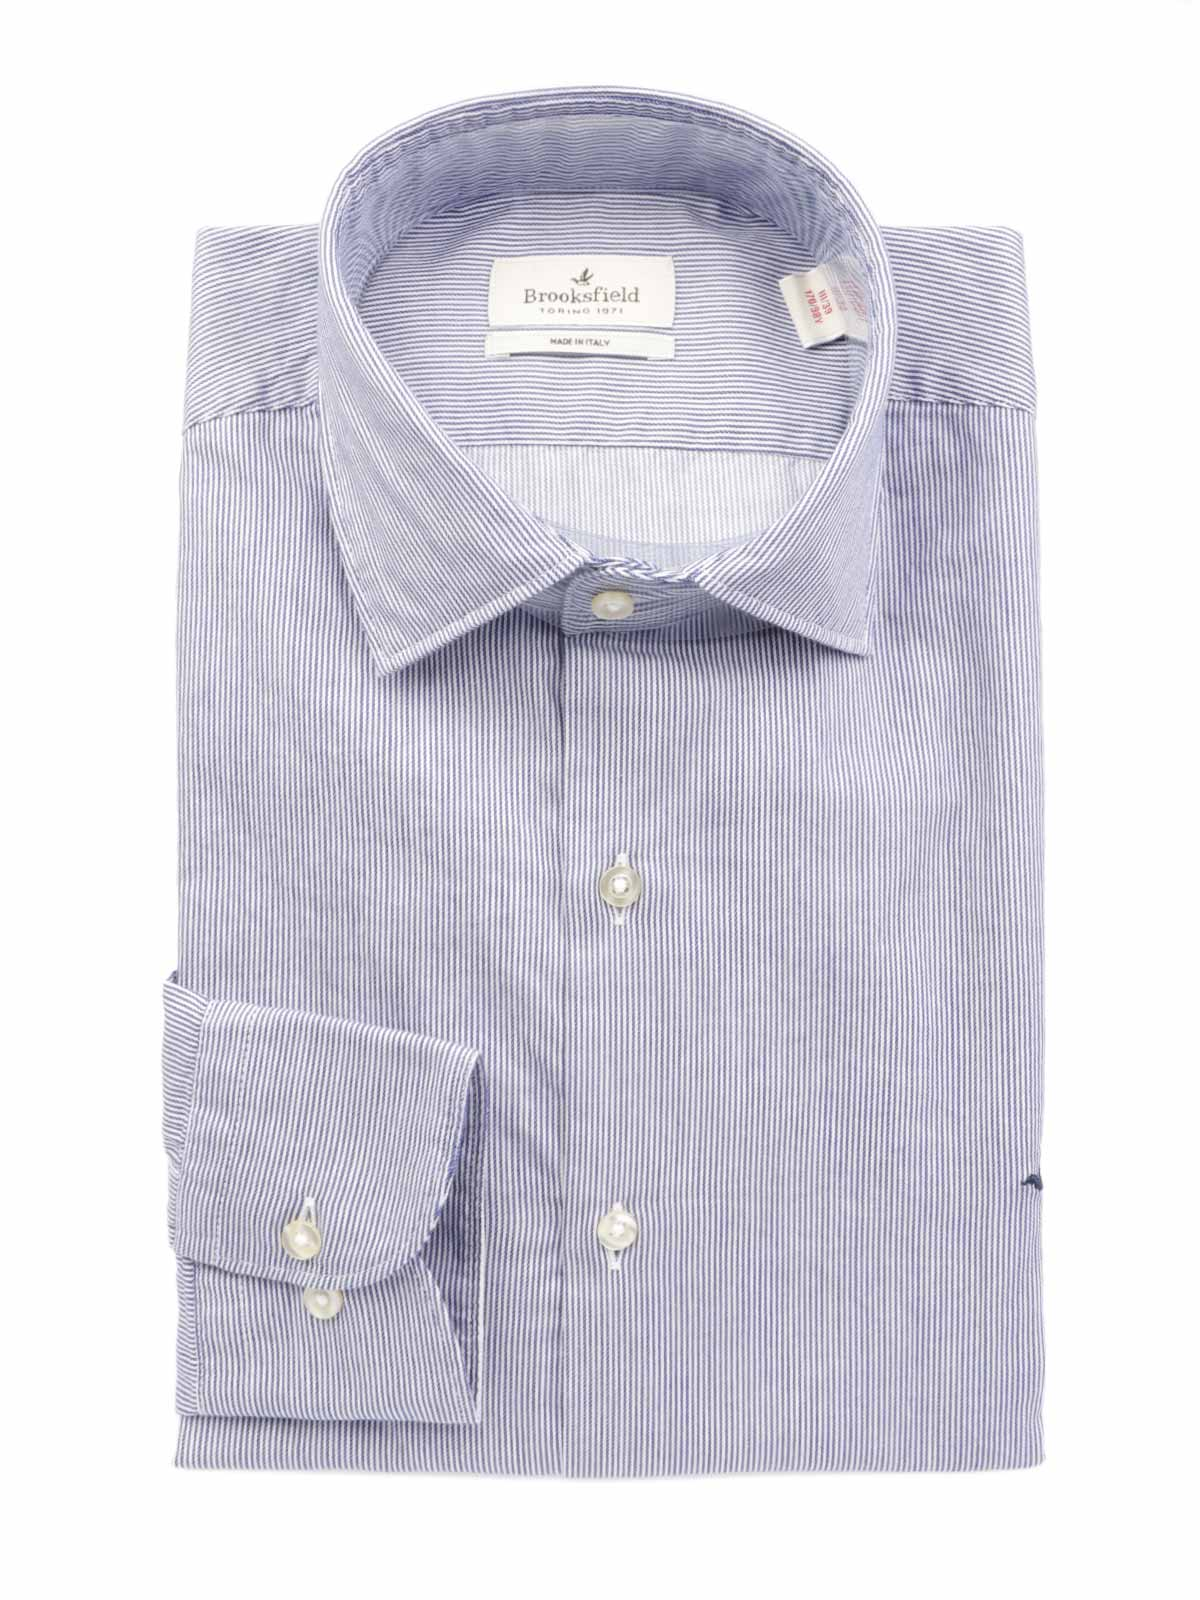 Immagine di Brooksfield | Camicie Slim Fit Shirt